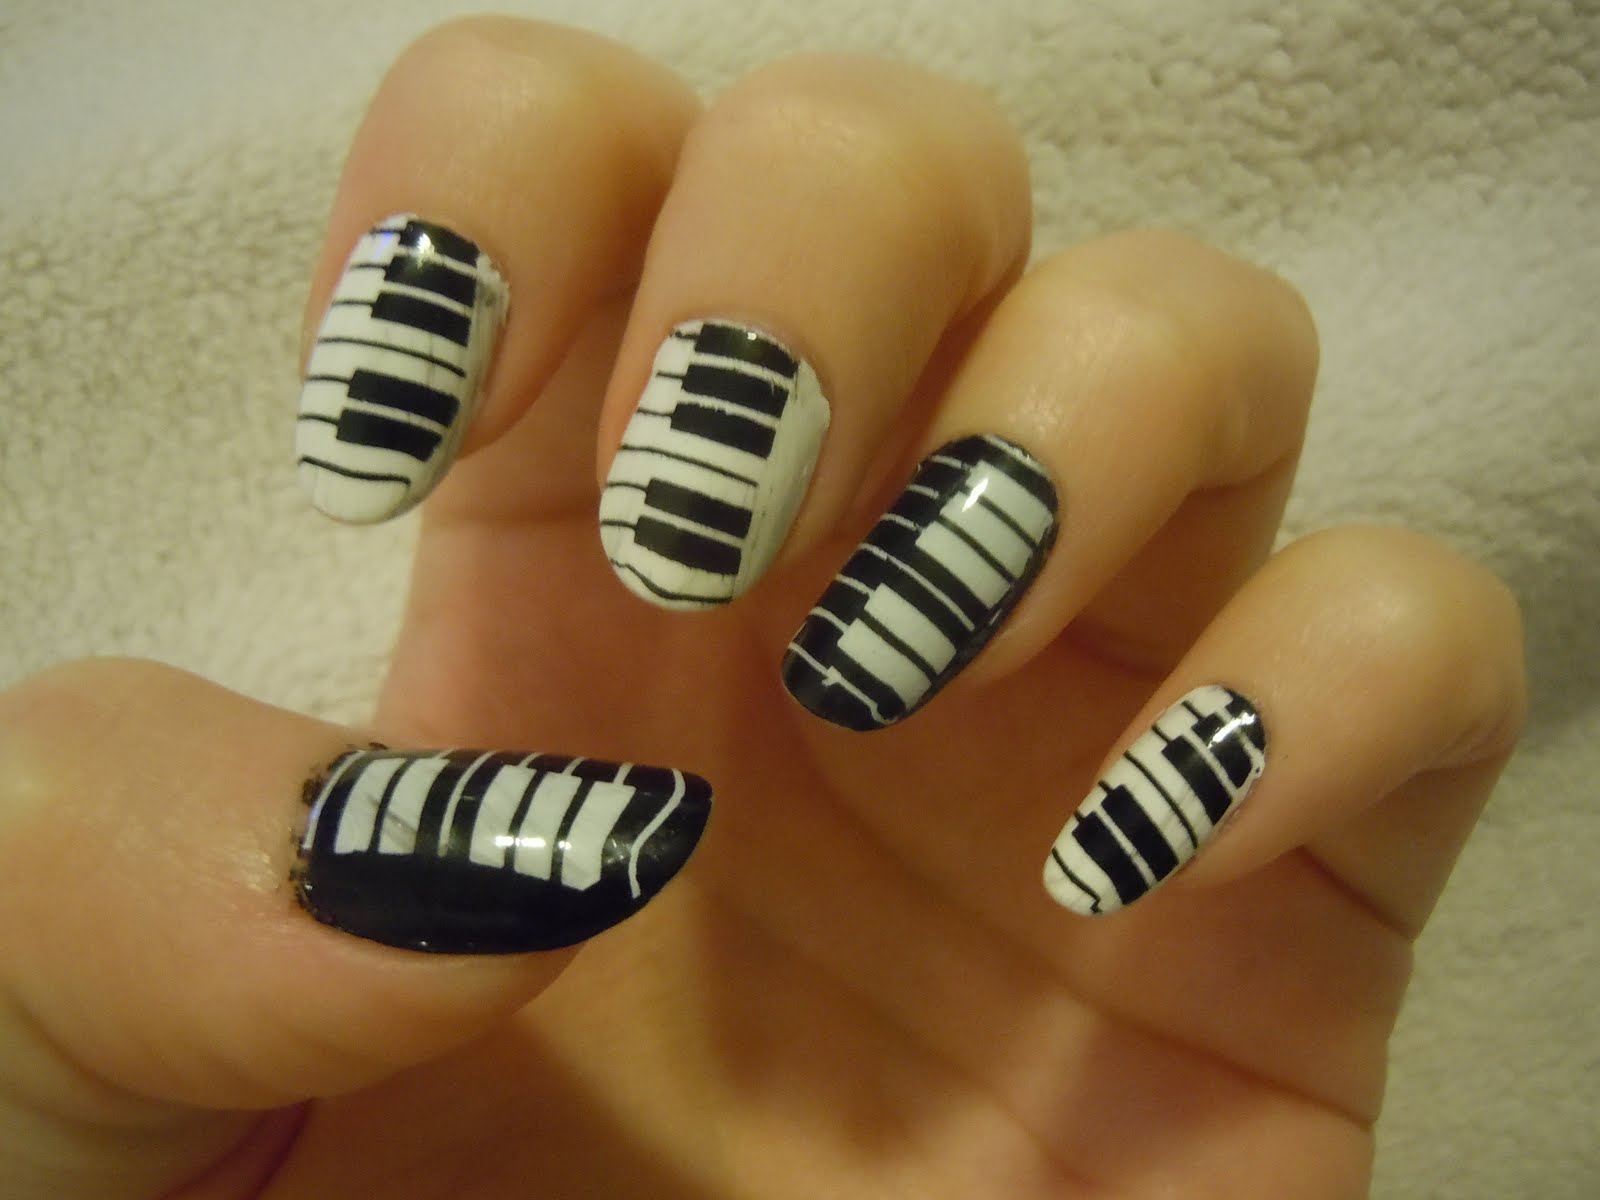 Bevys Nails August 2011